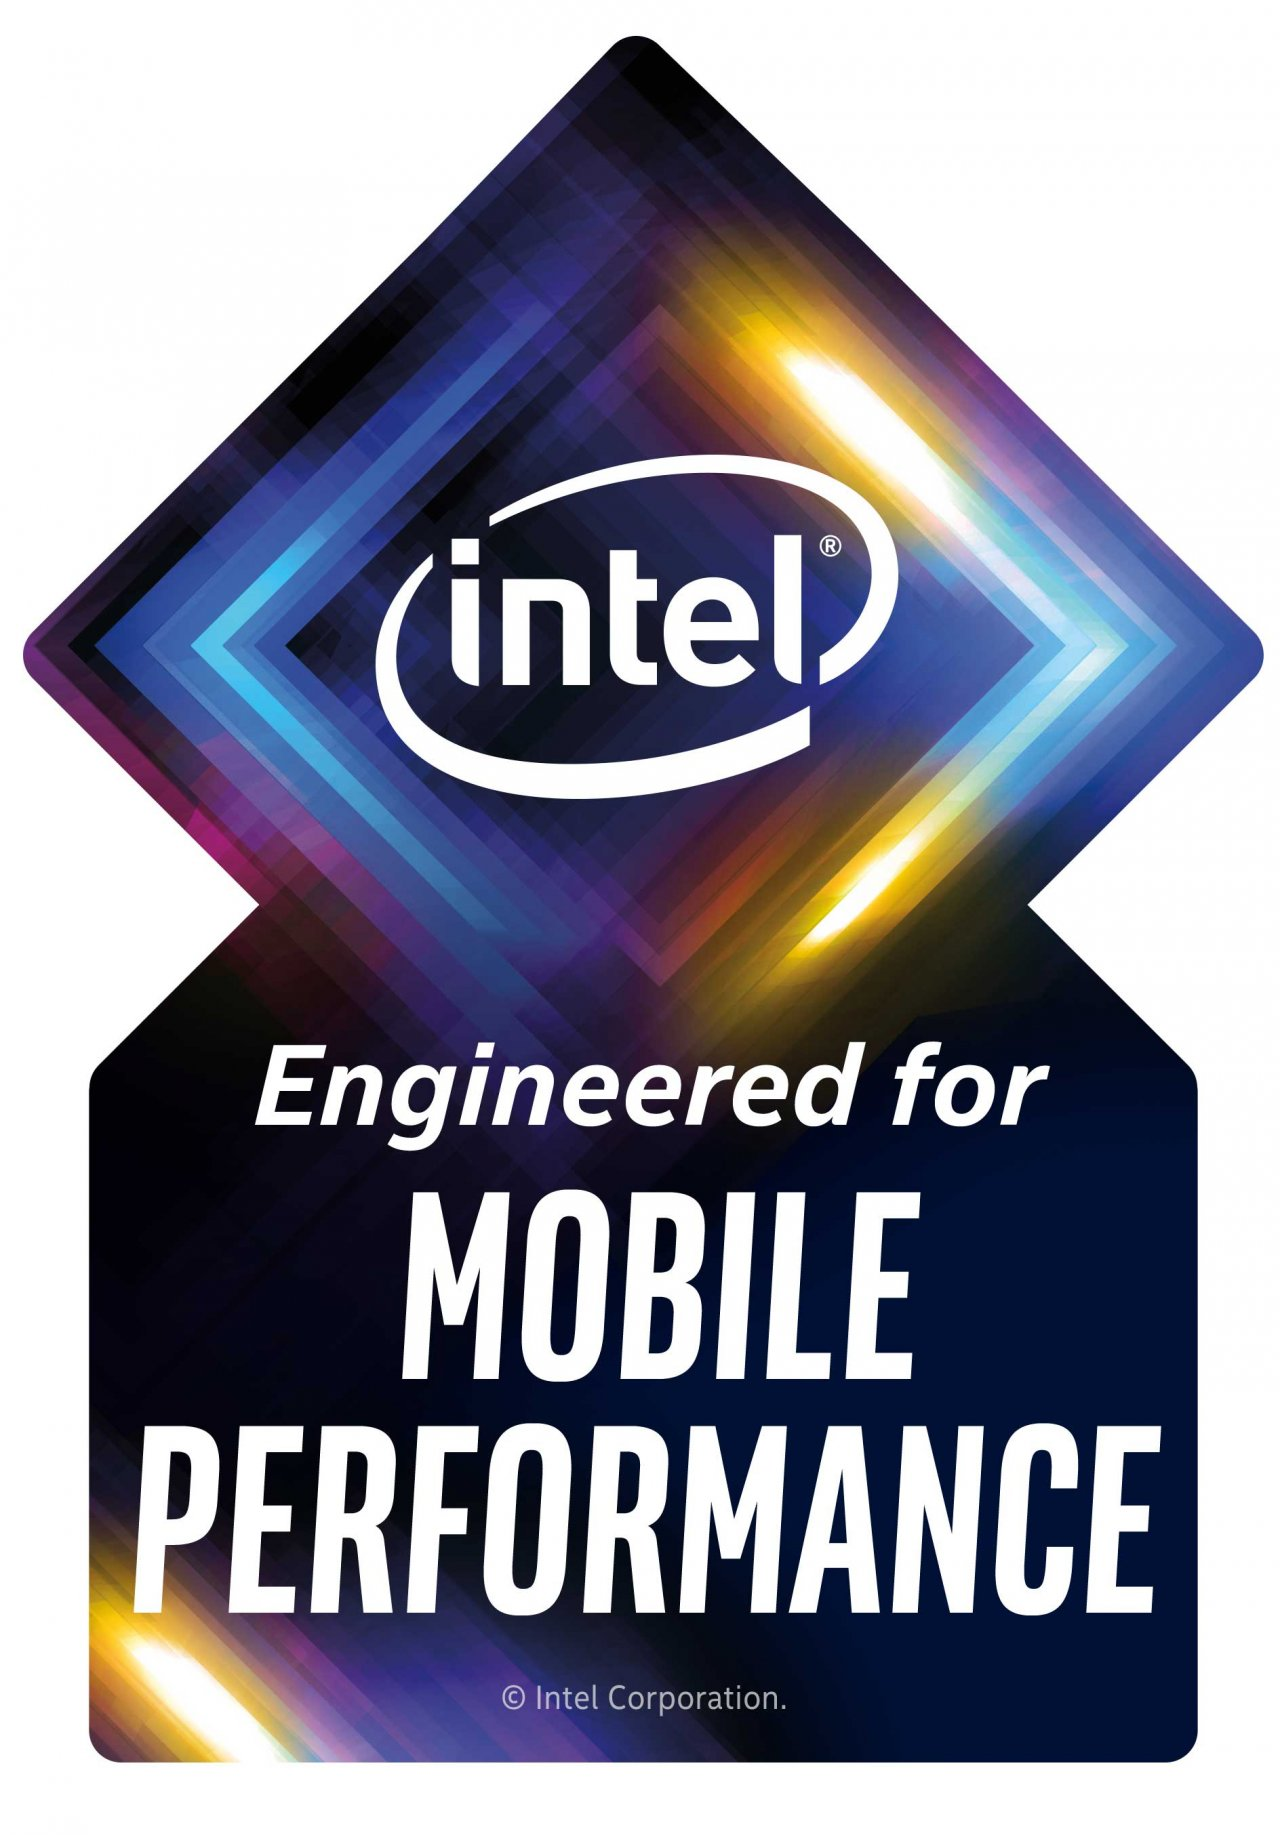 mobiles-ultrabook-mobile-performance-intel